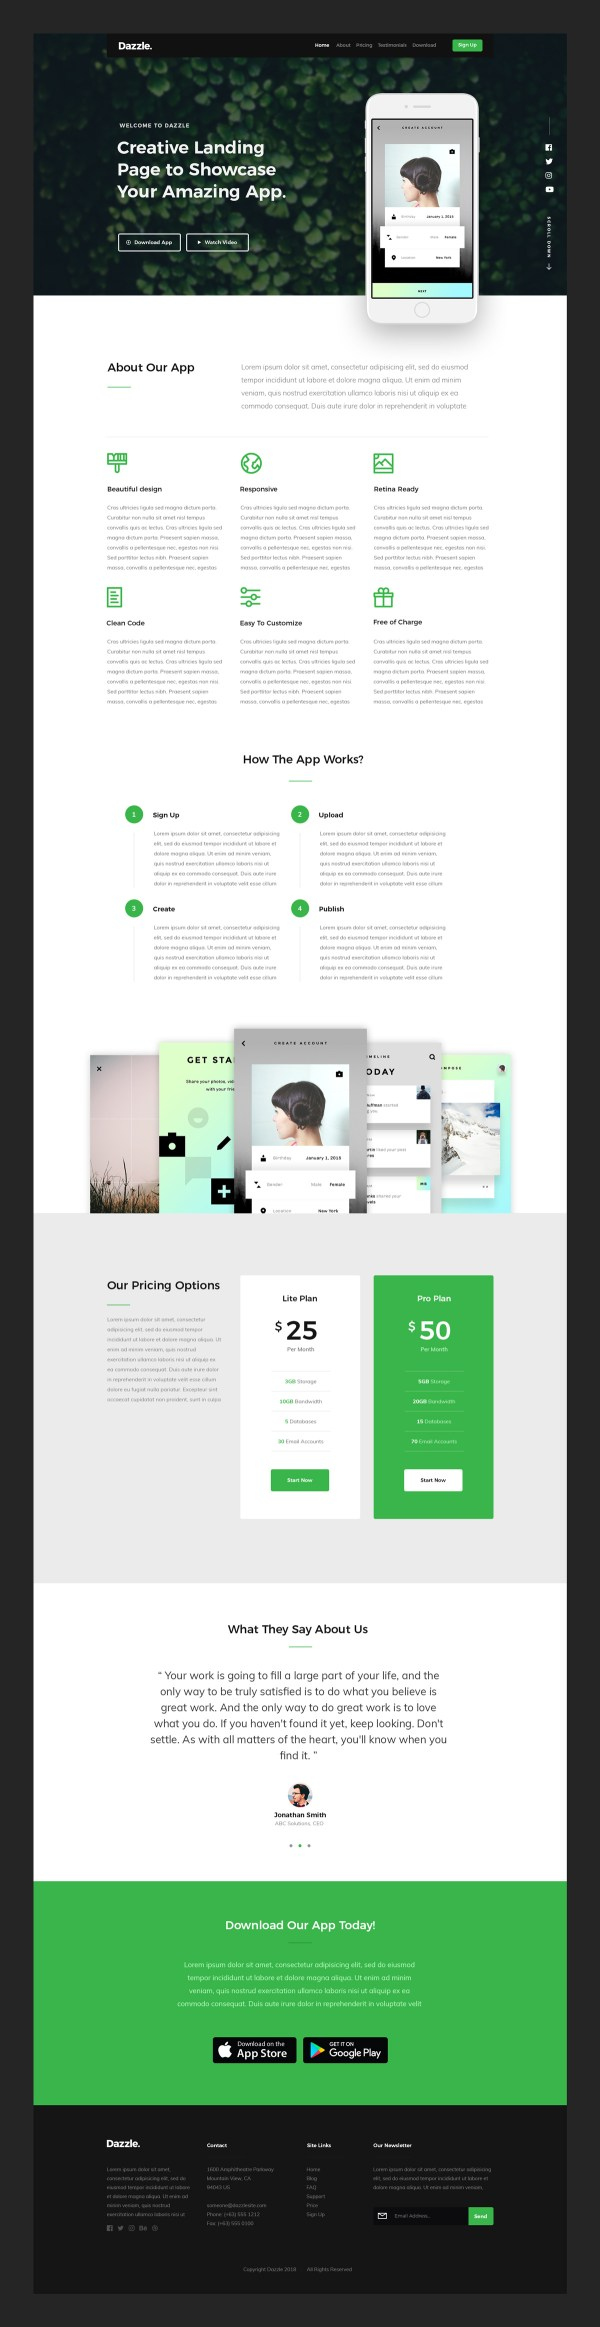 Dazzle - App Landing Page Free PSD Template 02